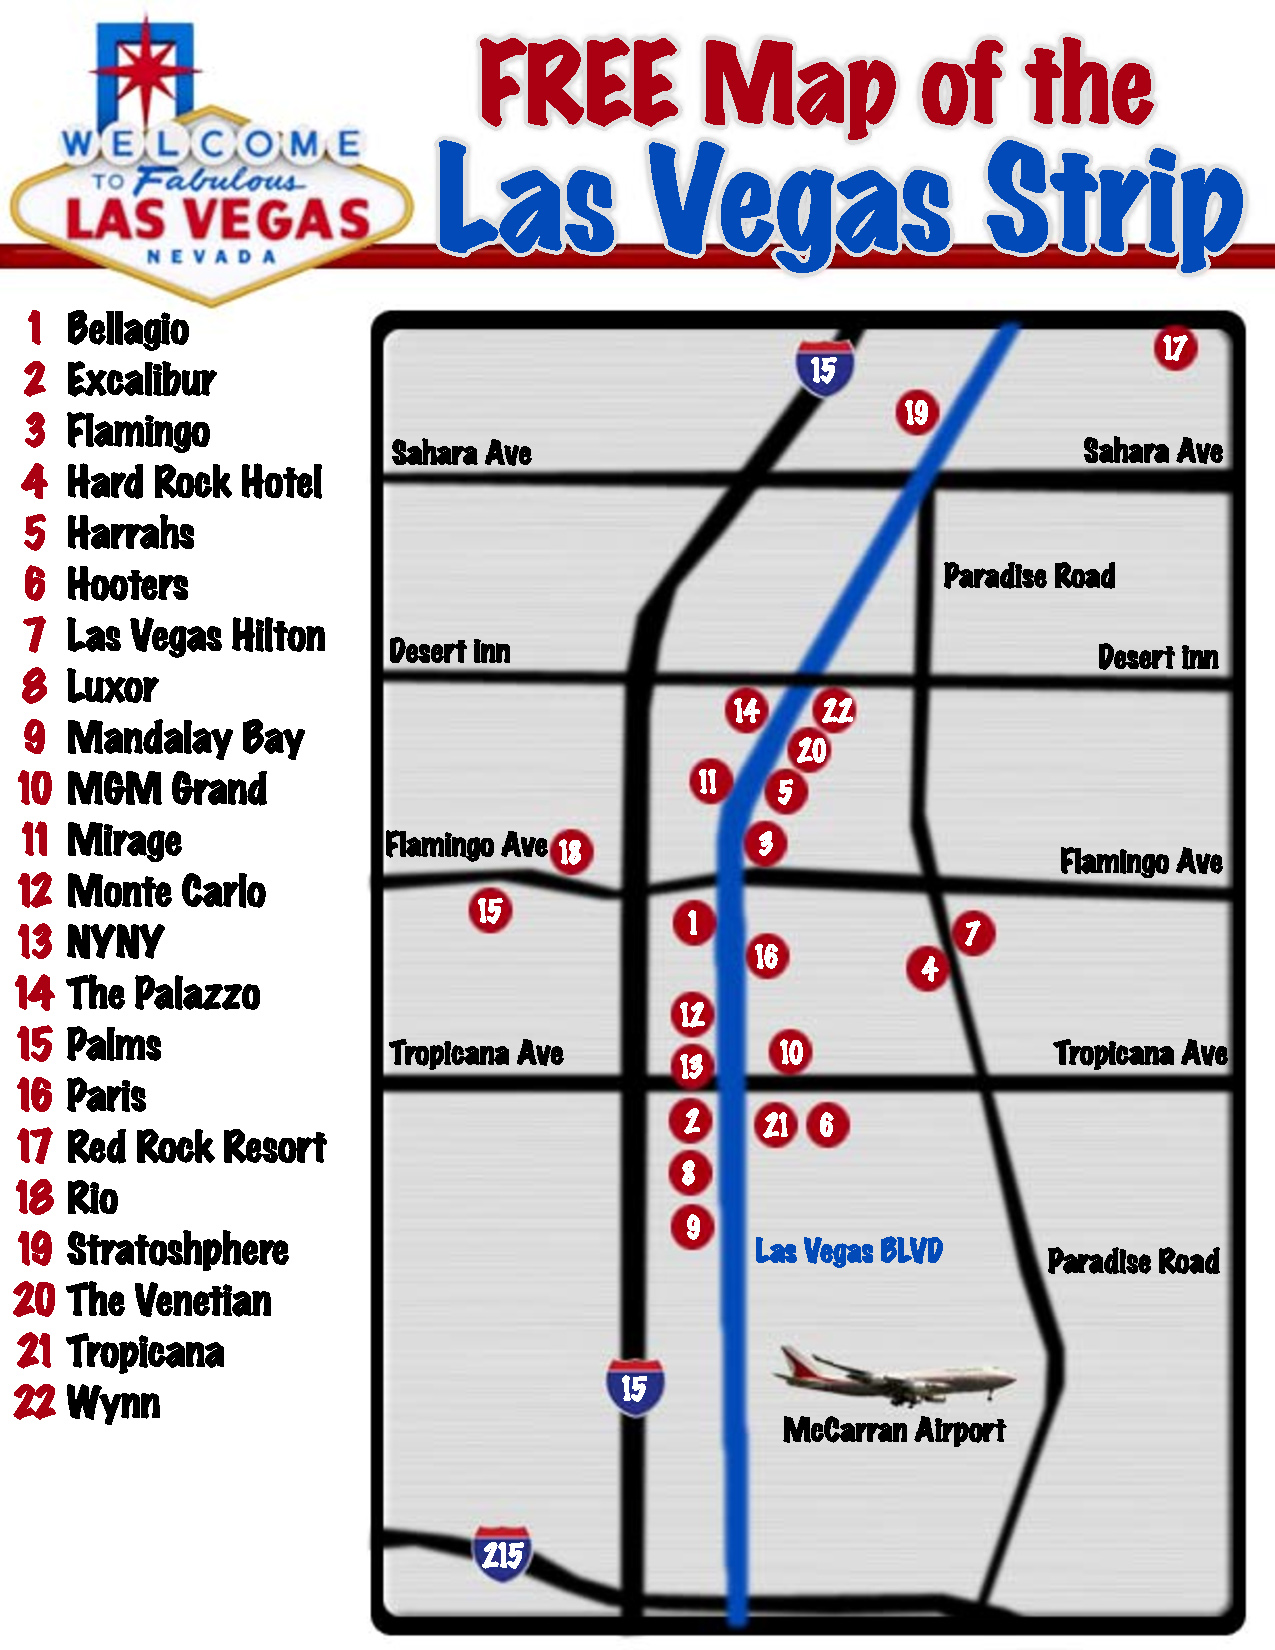 Map of the Las Vegas strip. Las Vegas strip map | Vidiani ... Hotels On Las Vegas Strip Map on las vegas casino map, hotels las vegas strip hotel map of all, four seasons las vegas hotels map, hotel las vegas city map, las vegas boulevard hotel map, hotels in seattle map, hotels outside las vegas, vegas strip casino map, las vegas monorail map,